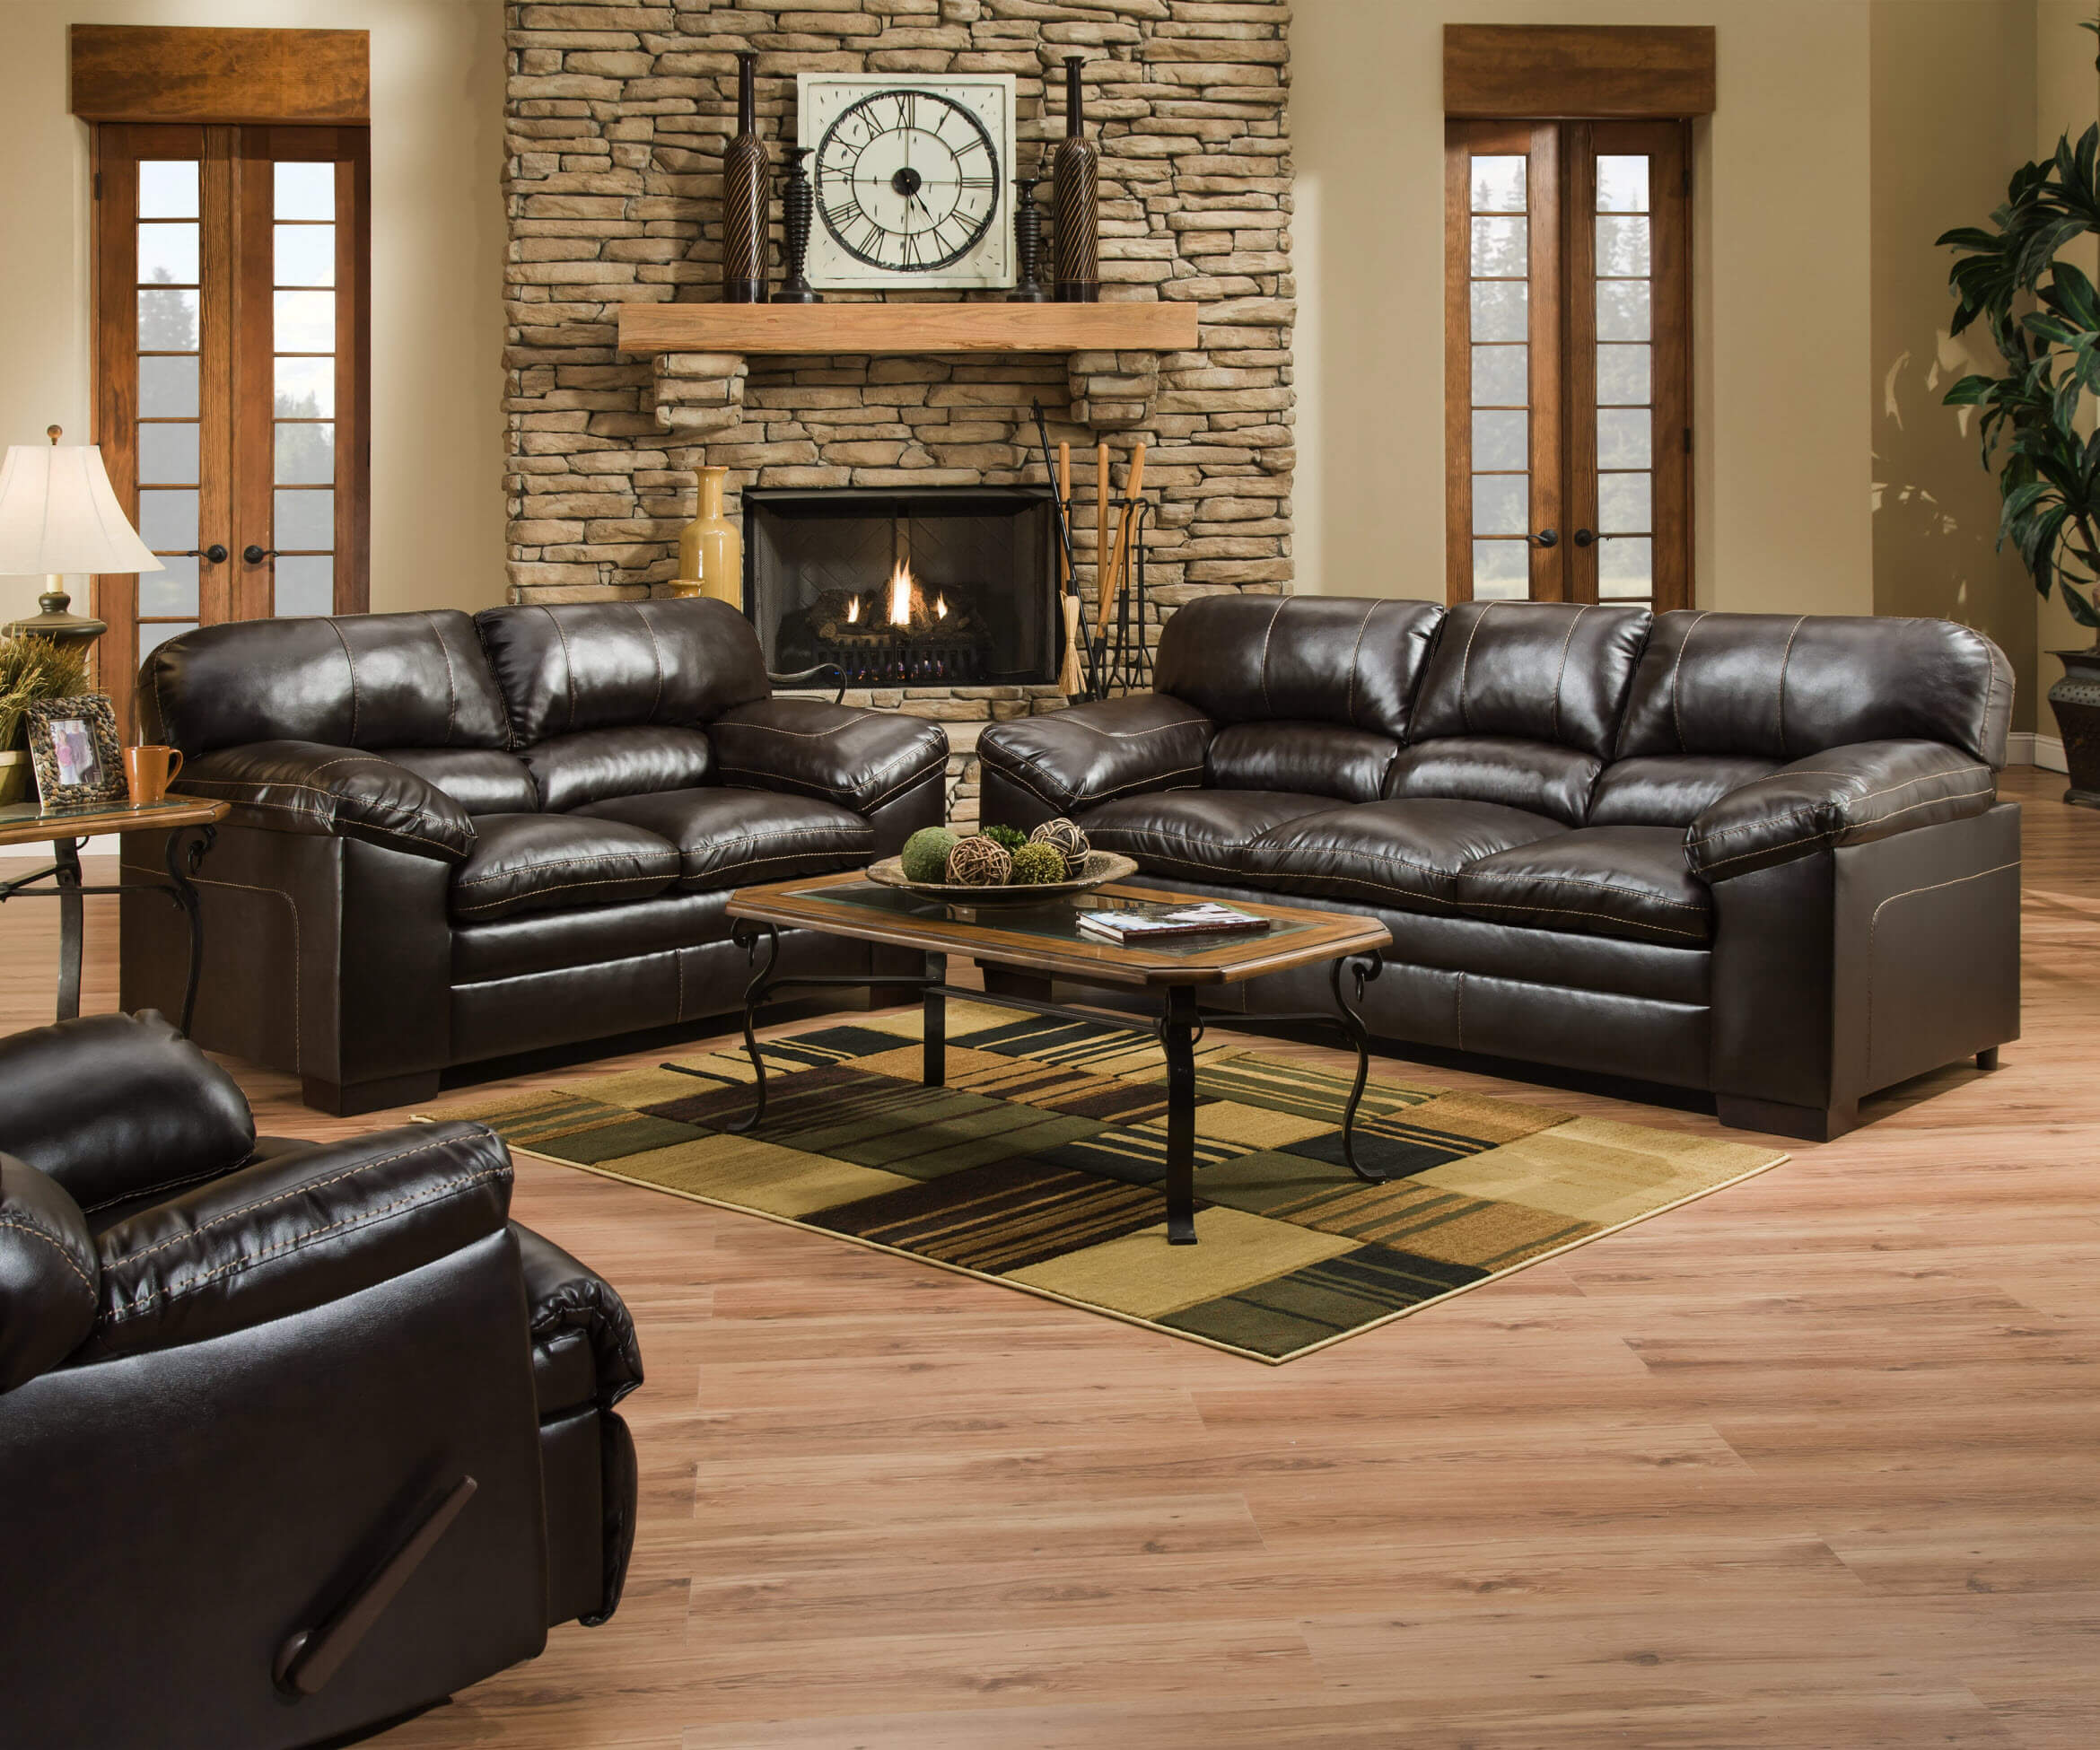 Bonded Leather Vs Faux Leather >> Bonded Leather vs. Genuine Leather | Urban Furniture Outlet